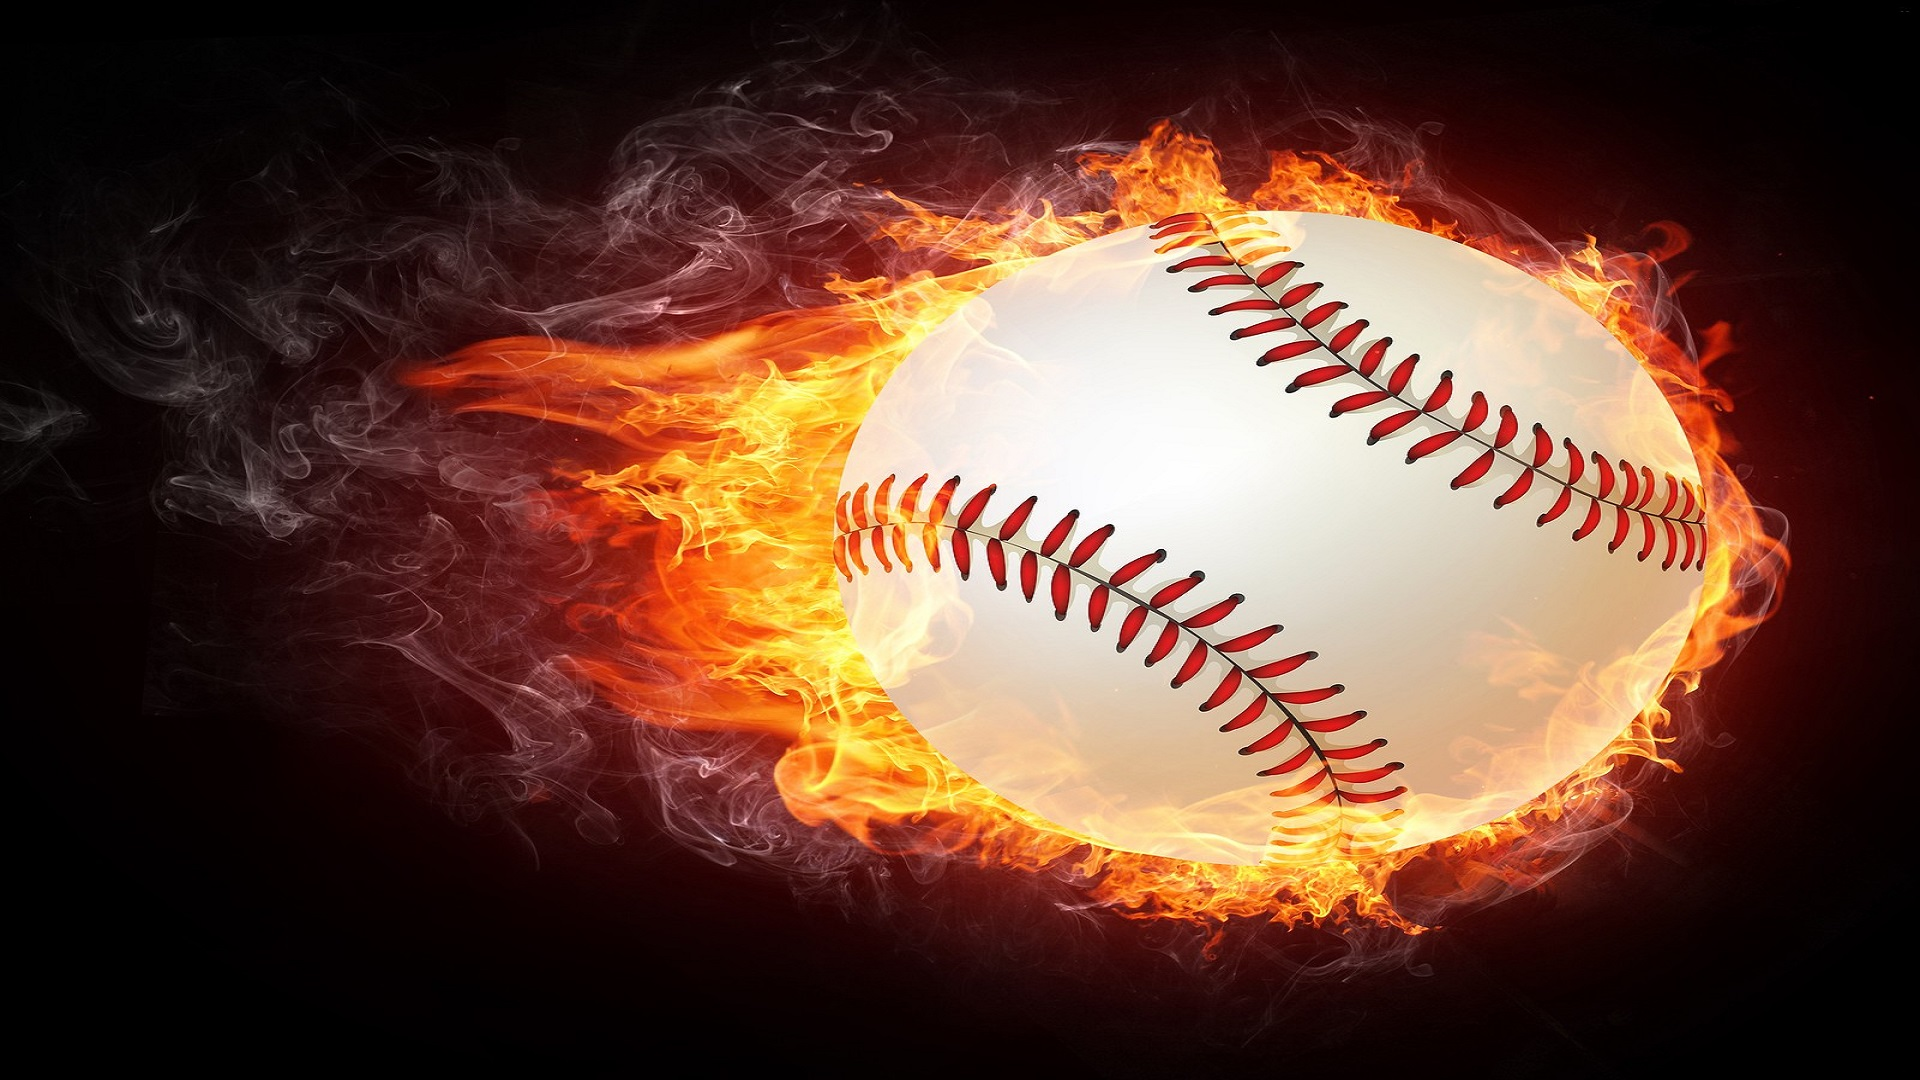 Fire Baseball Images Free Hd Wallpapers For Desktop